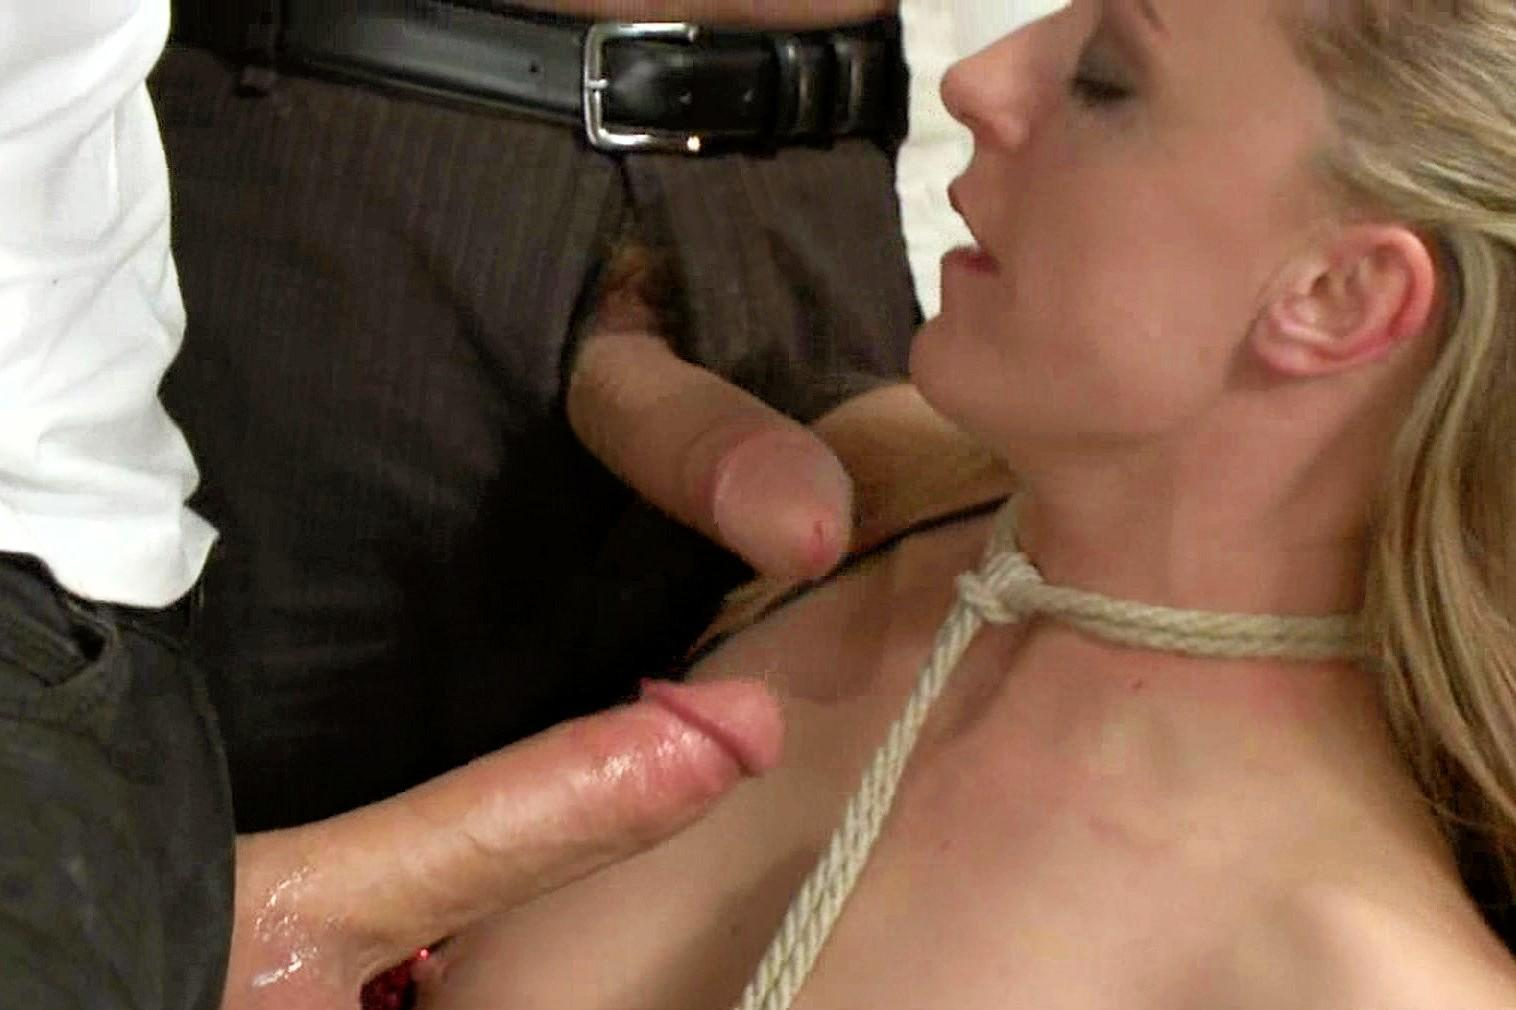 watch bondage video sex online